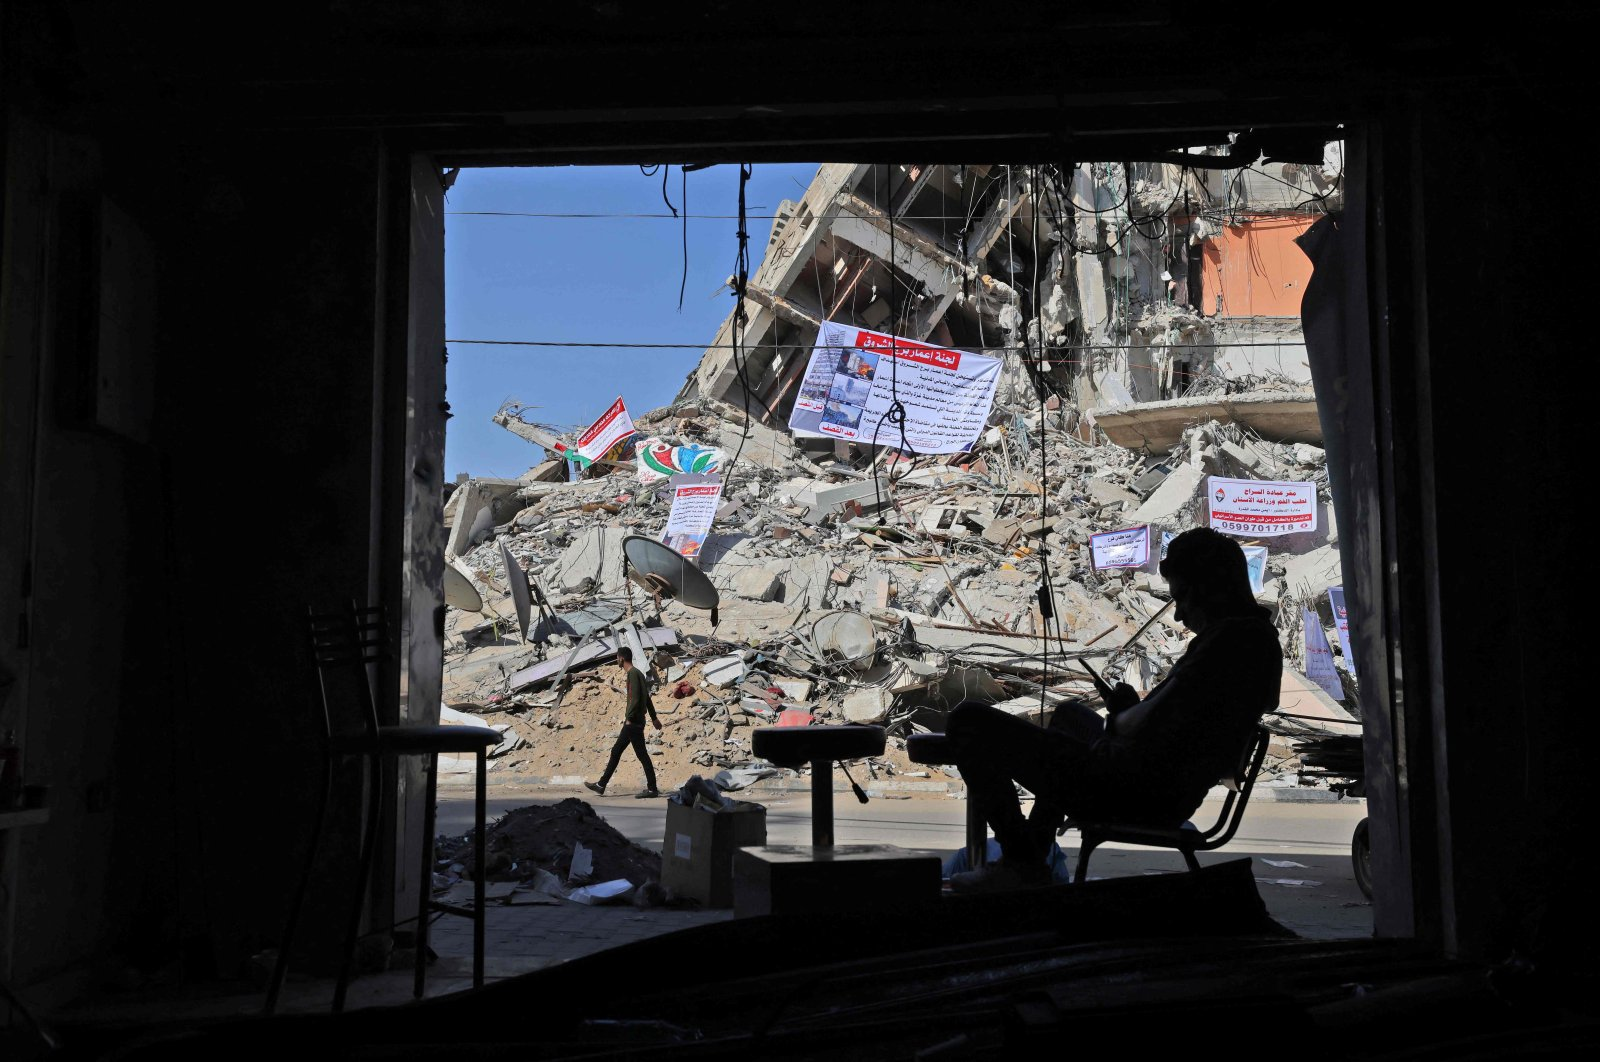 A man sits in a damaged shop at a building partially destroyed in recent Israeli air strikes, in Gaza City, Palestine, May 26, 2021. (AFP Photo)